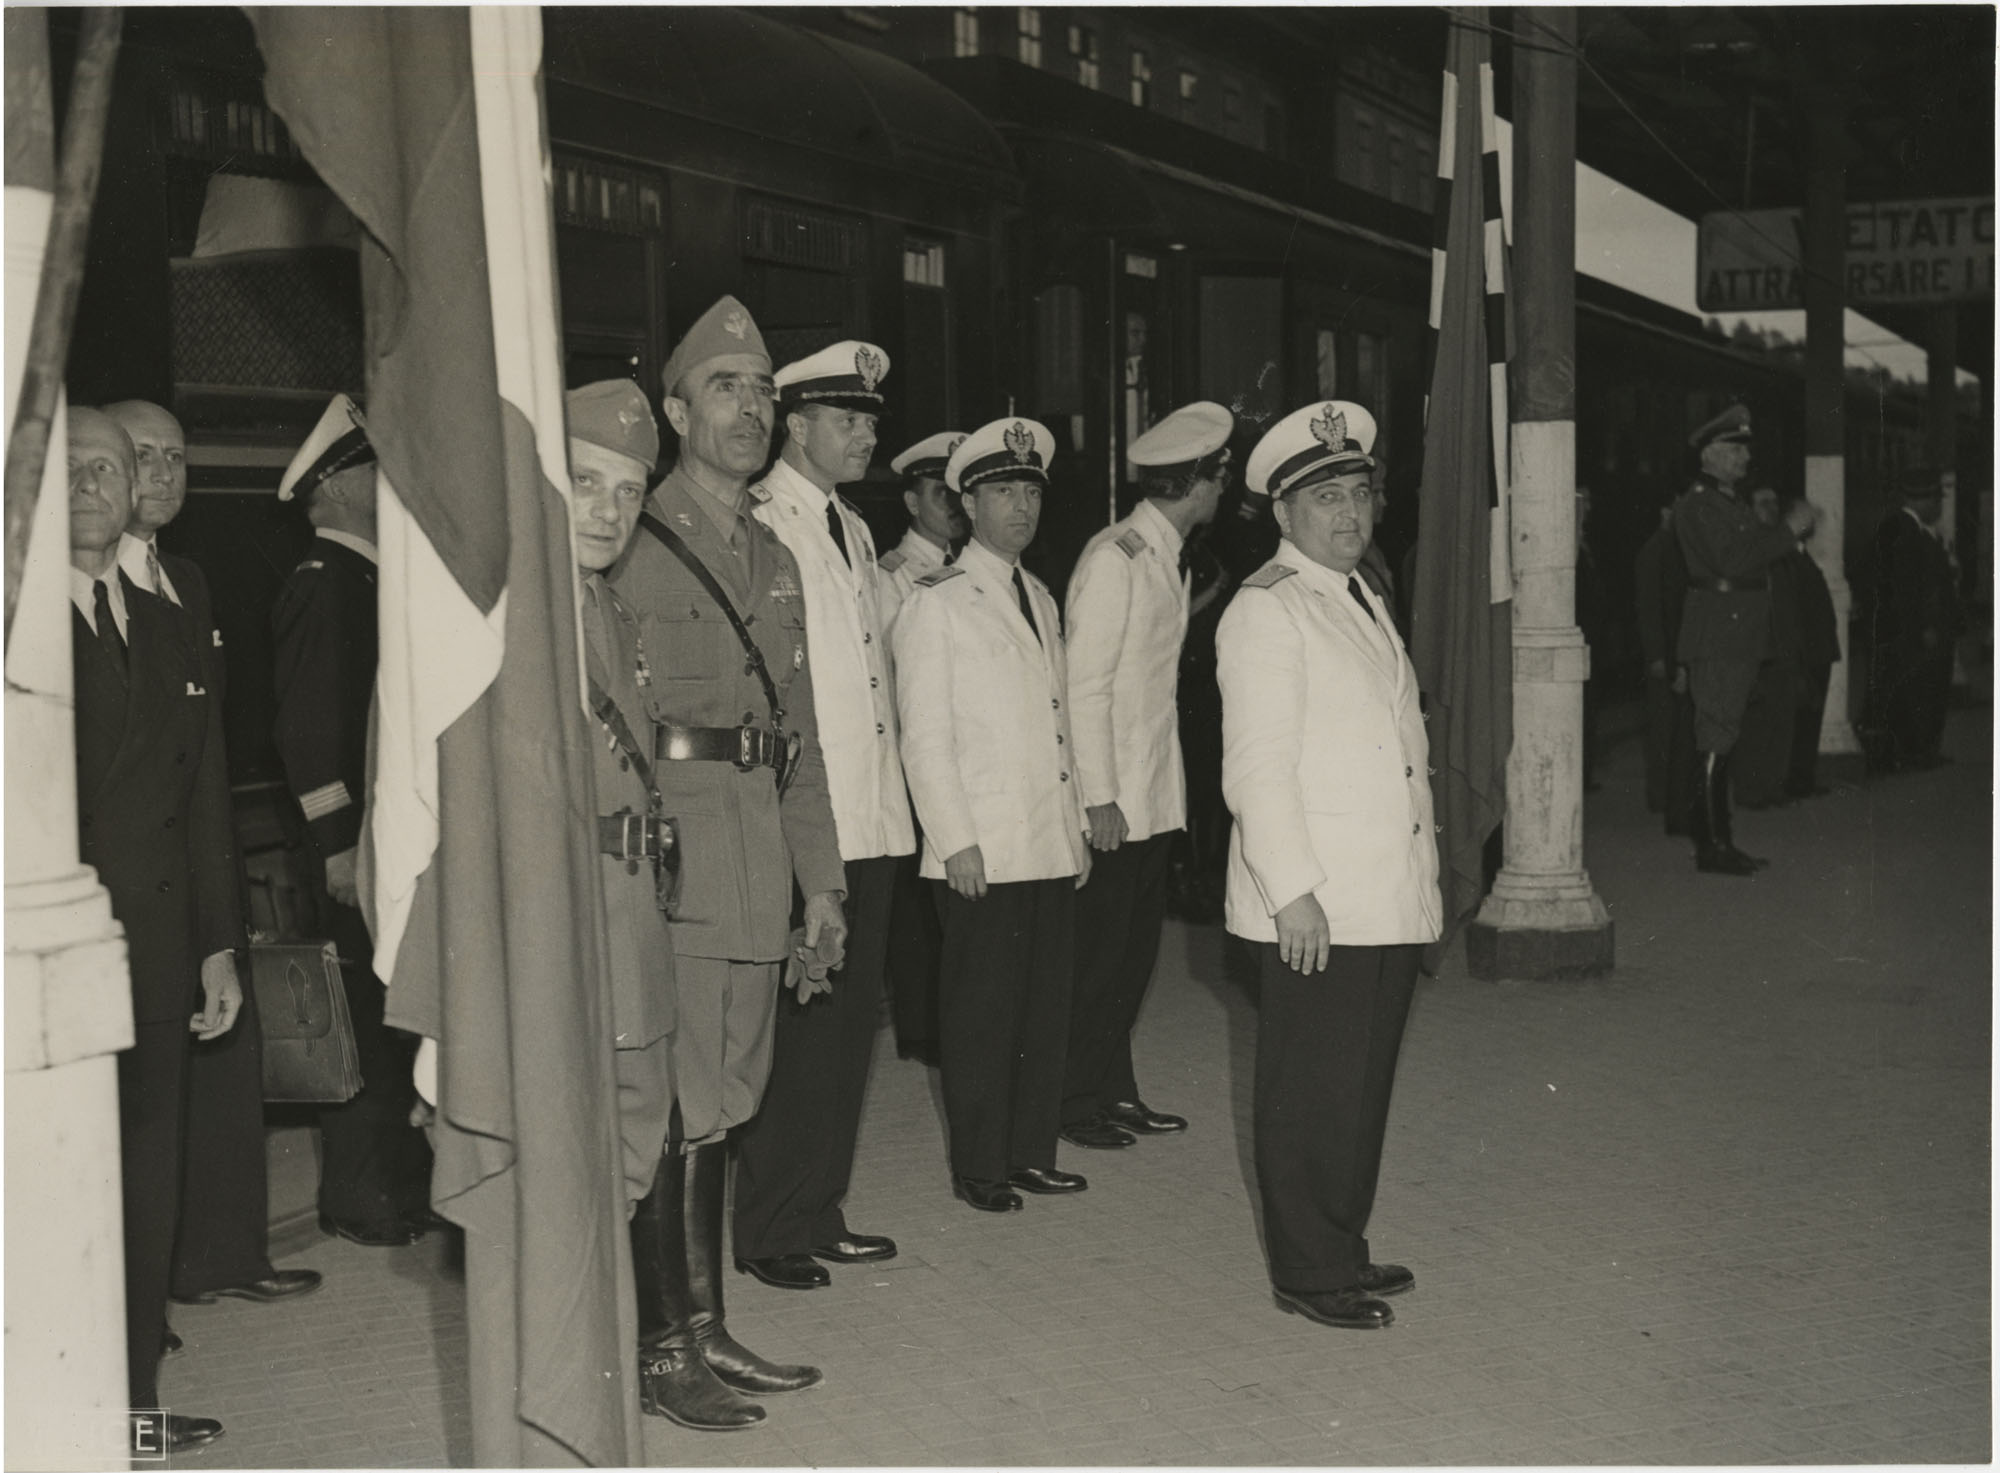 Military officials at a train station, Photograph 14